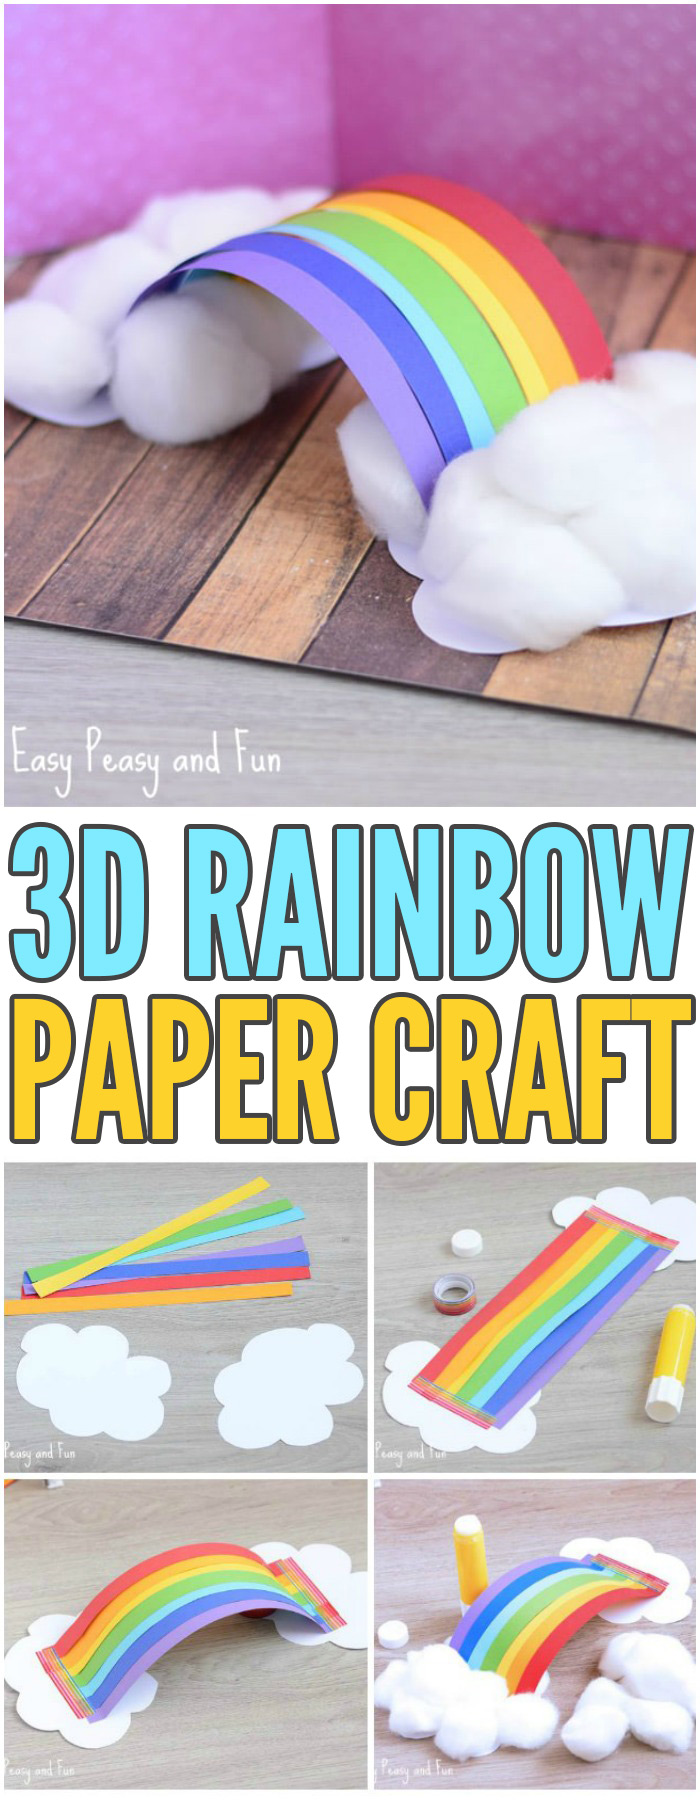 Simple 3D Rainbow Paper Craft for Kids #craftsforkids #Springcrafts #papercraftsforkids